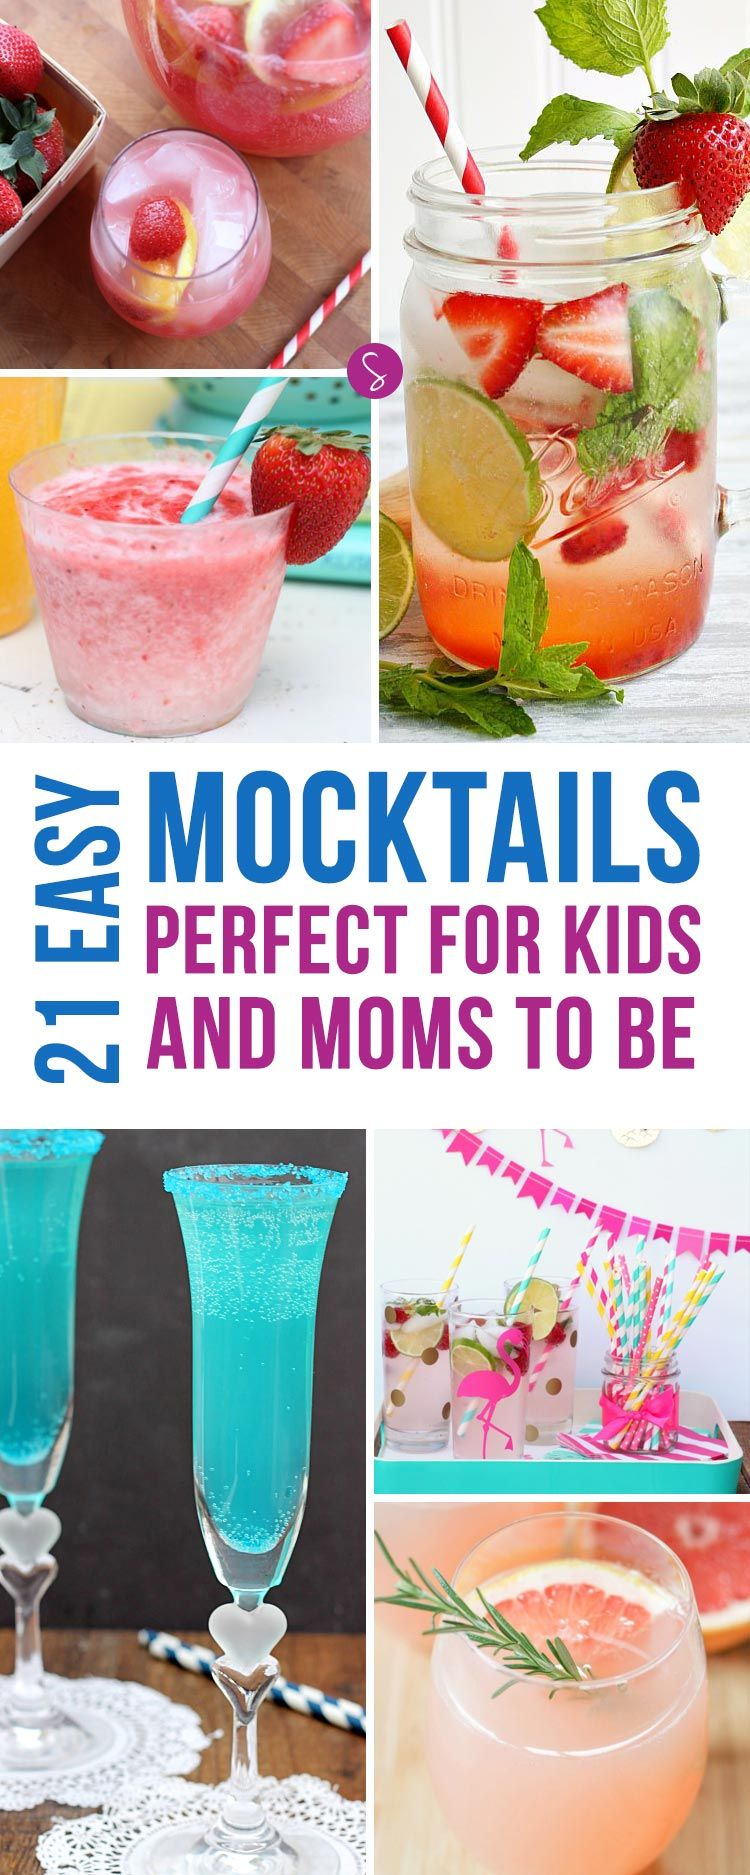 21 Delicious Baby Shower Mocktails Your Friends Will Love In 2018